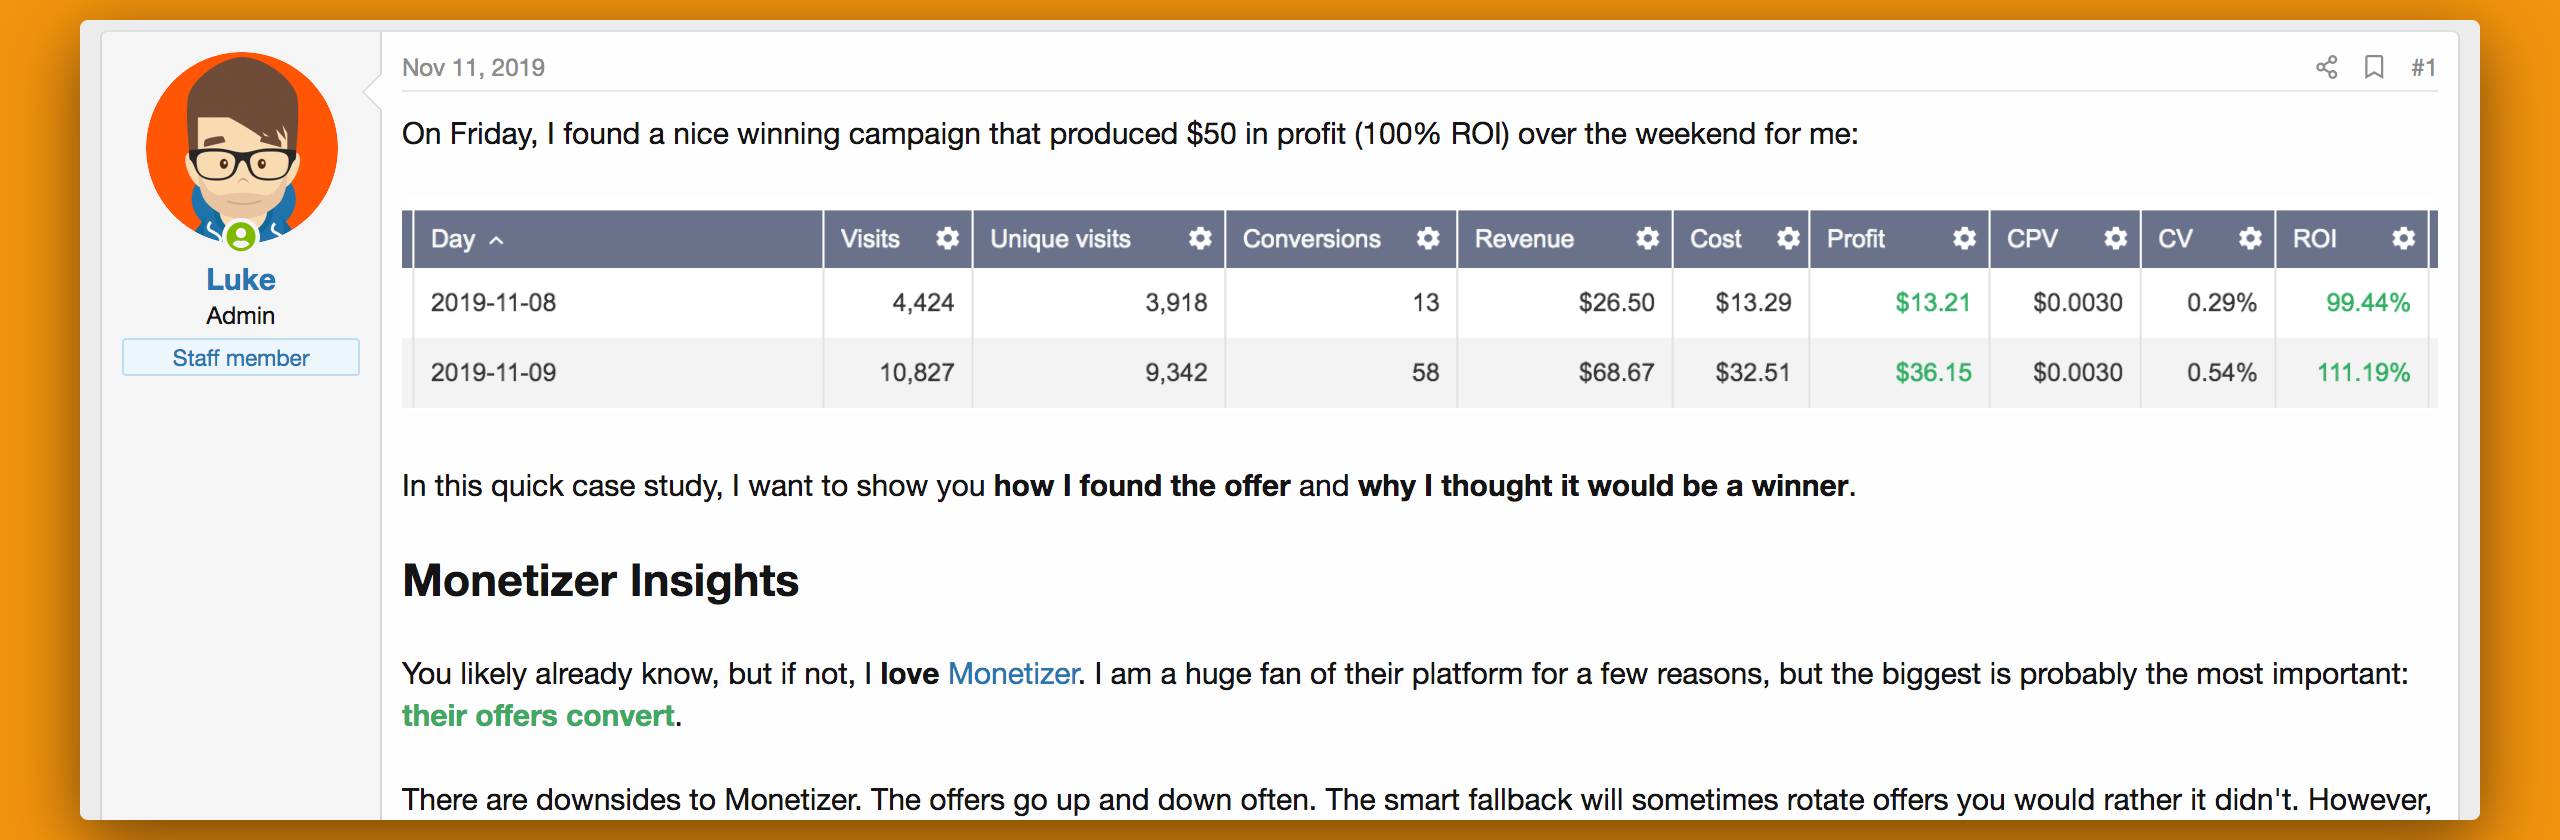 Monetizer Case Study